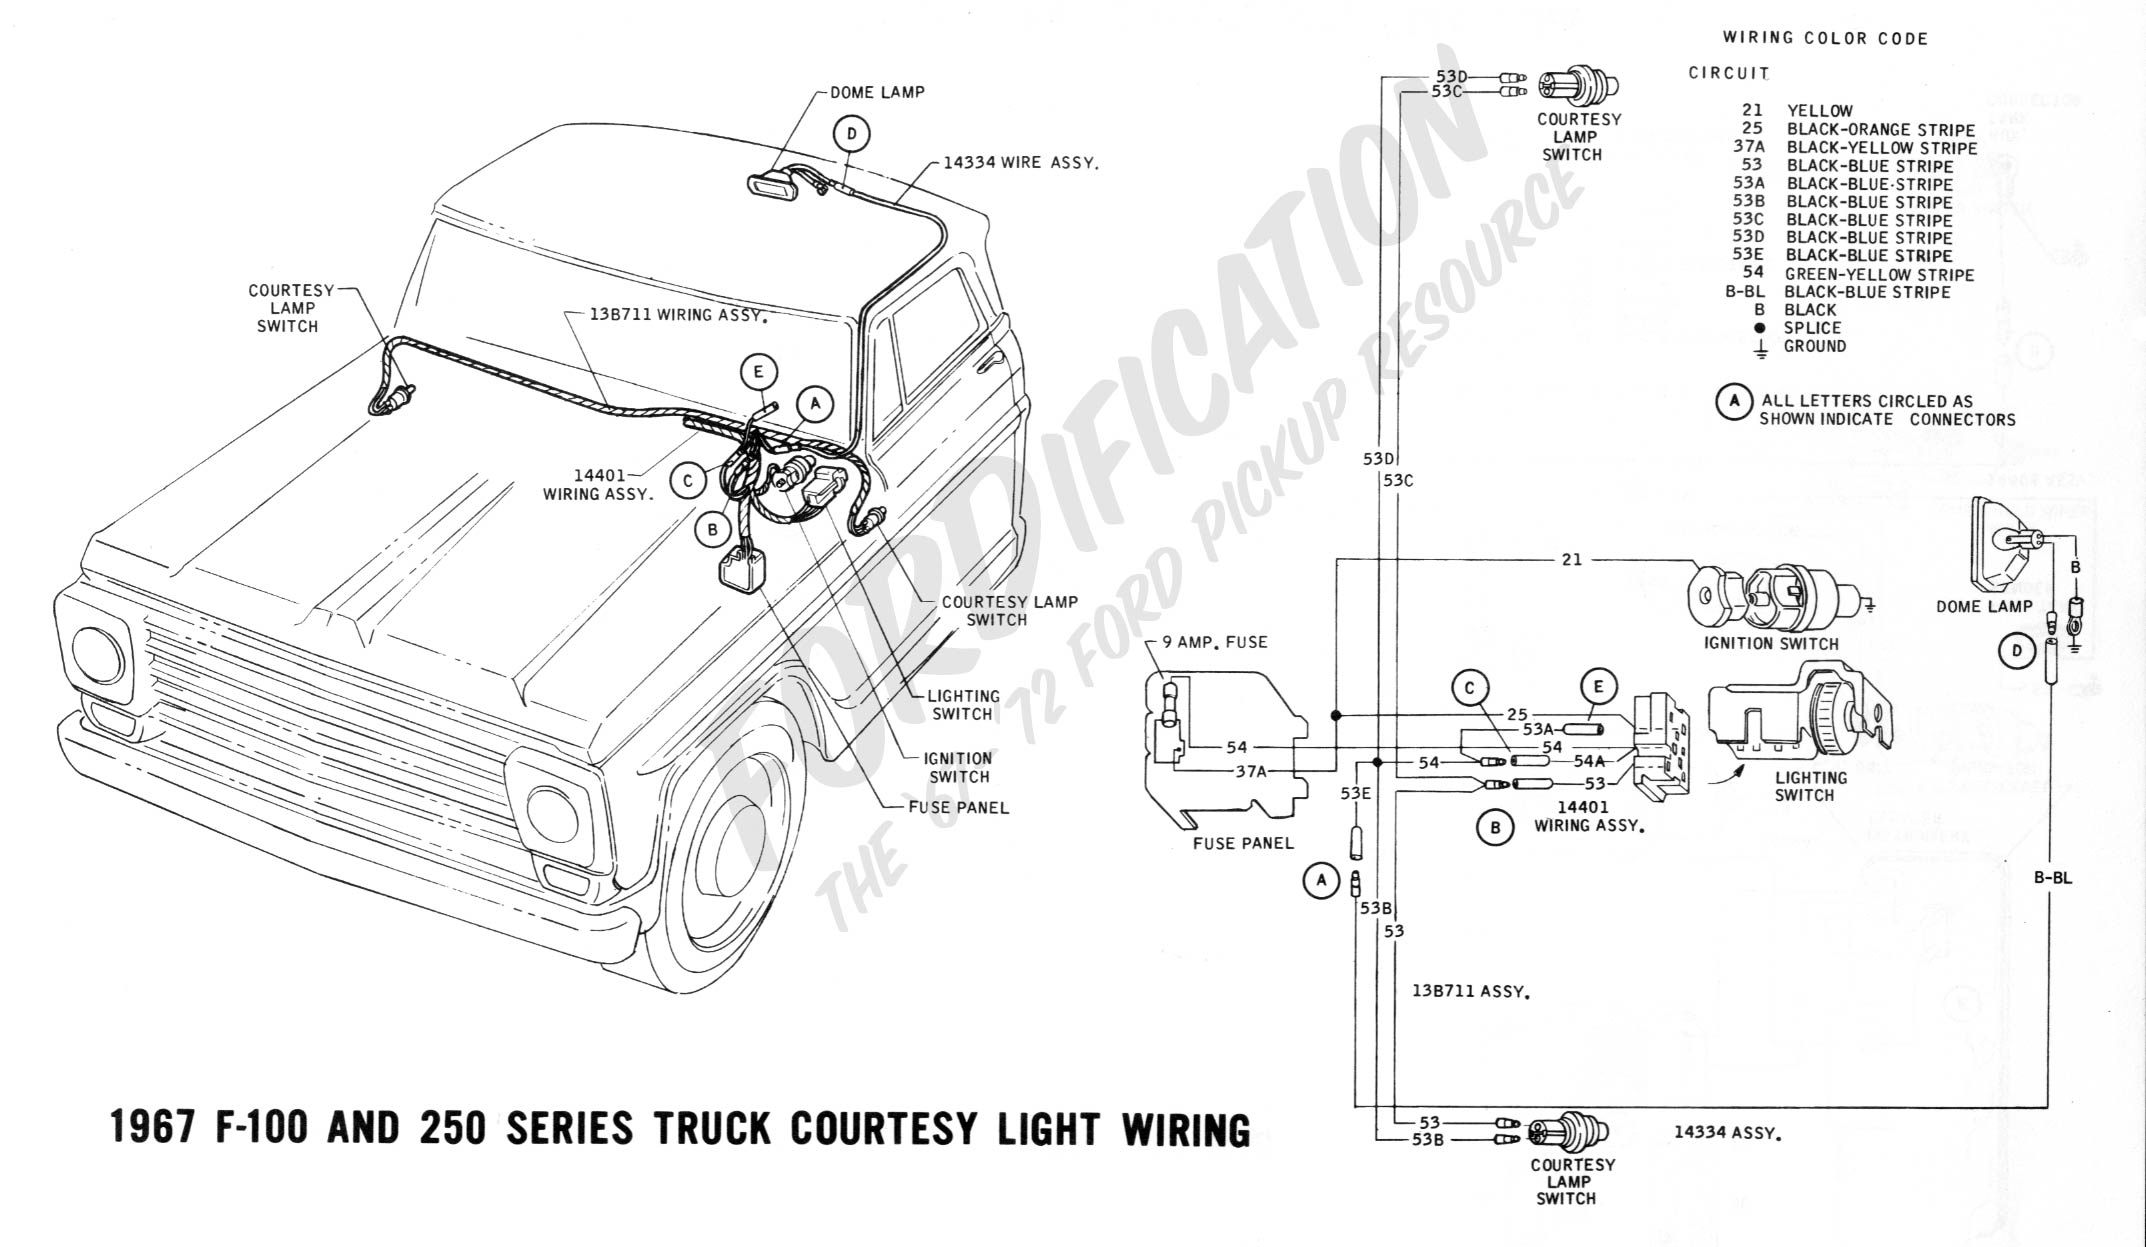 wiring 1967courtesylight wiring in ignition switch in 1966 f100 ford truck enthusiasts forums 1966 ford truck wiring harness at creativeand.co